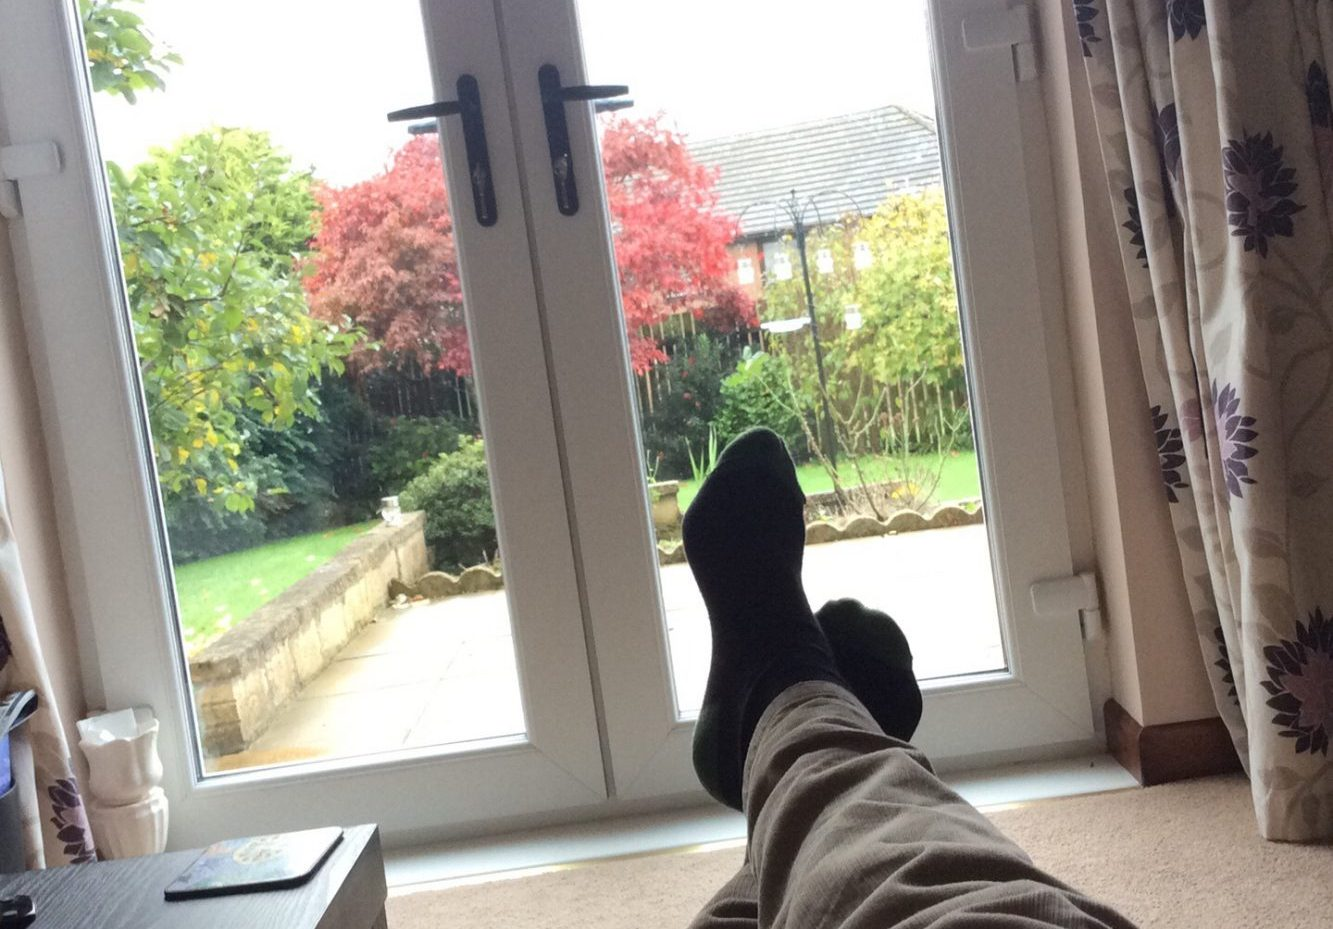 Evocative image: the editor's feet stretched out, big windowed doors, a fresh, bright garden outside.